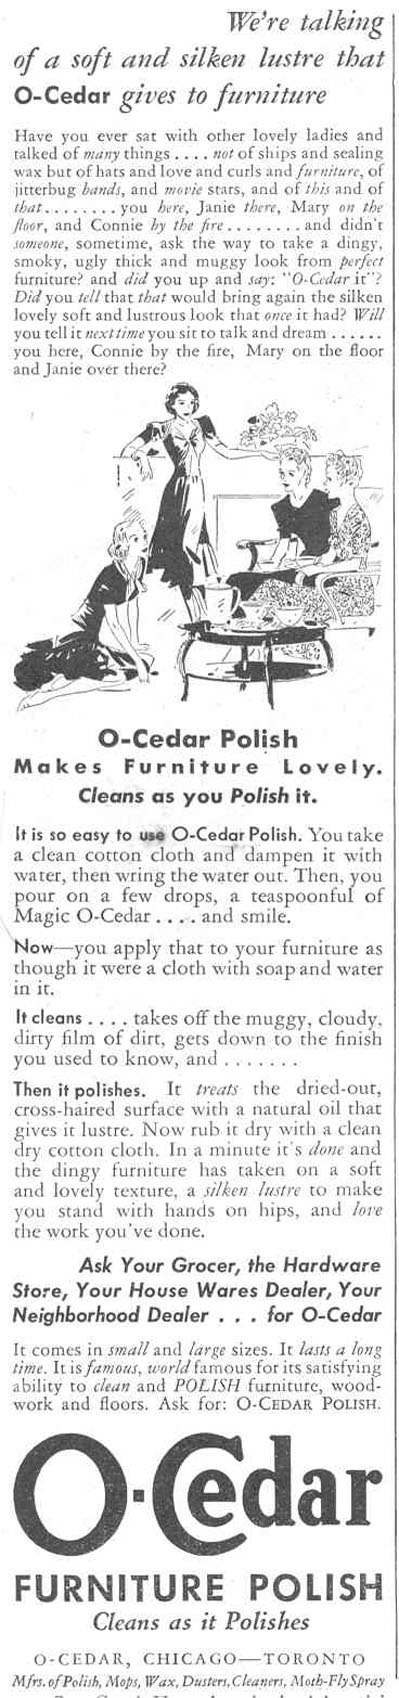 O-CEDAR FURNITURE POLISH